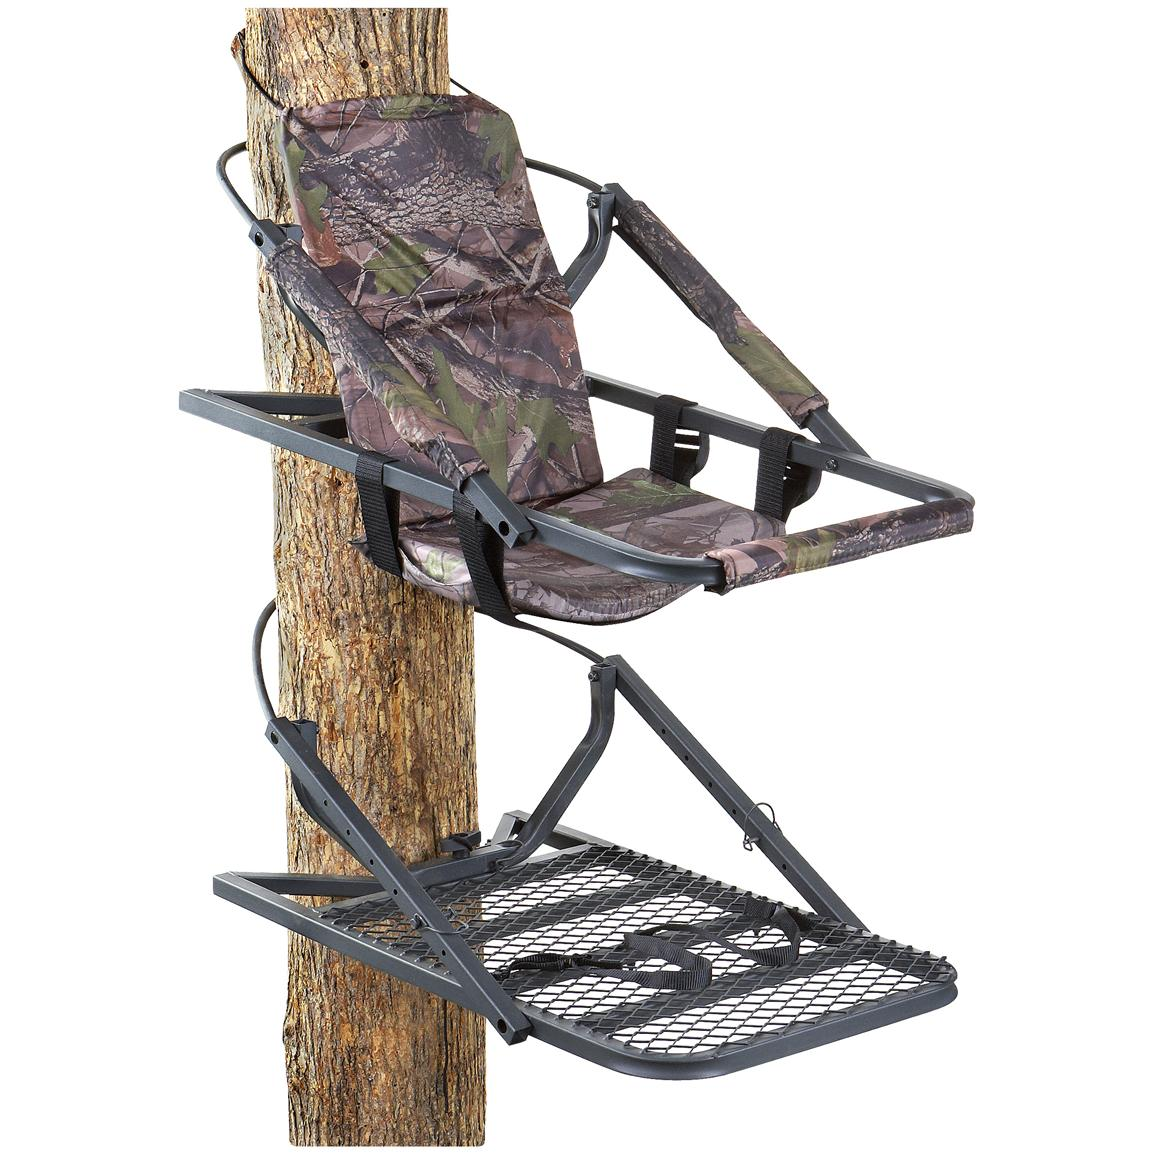 summit trophy chair review mermaid covers ideas guide gear extreme deluxe hunting climber tree stand 177426